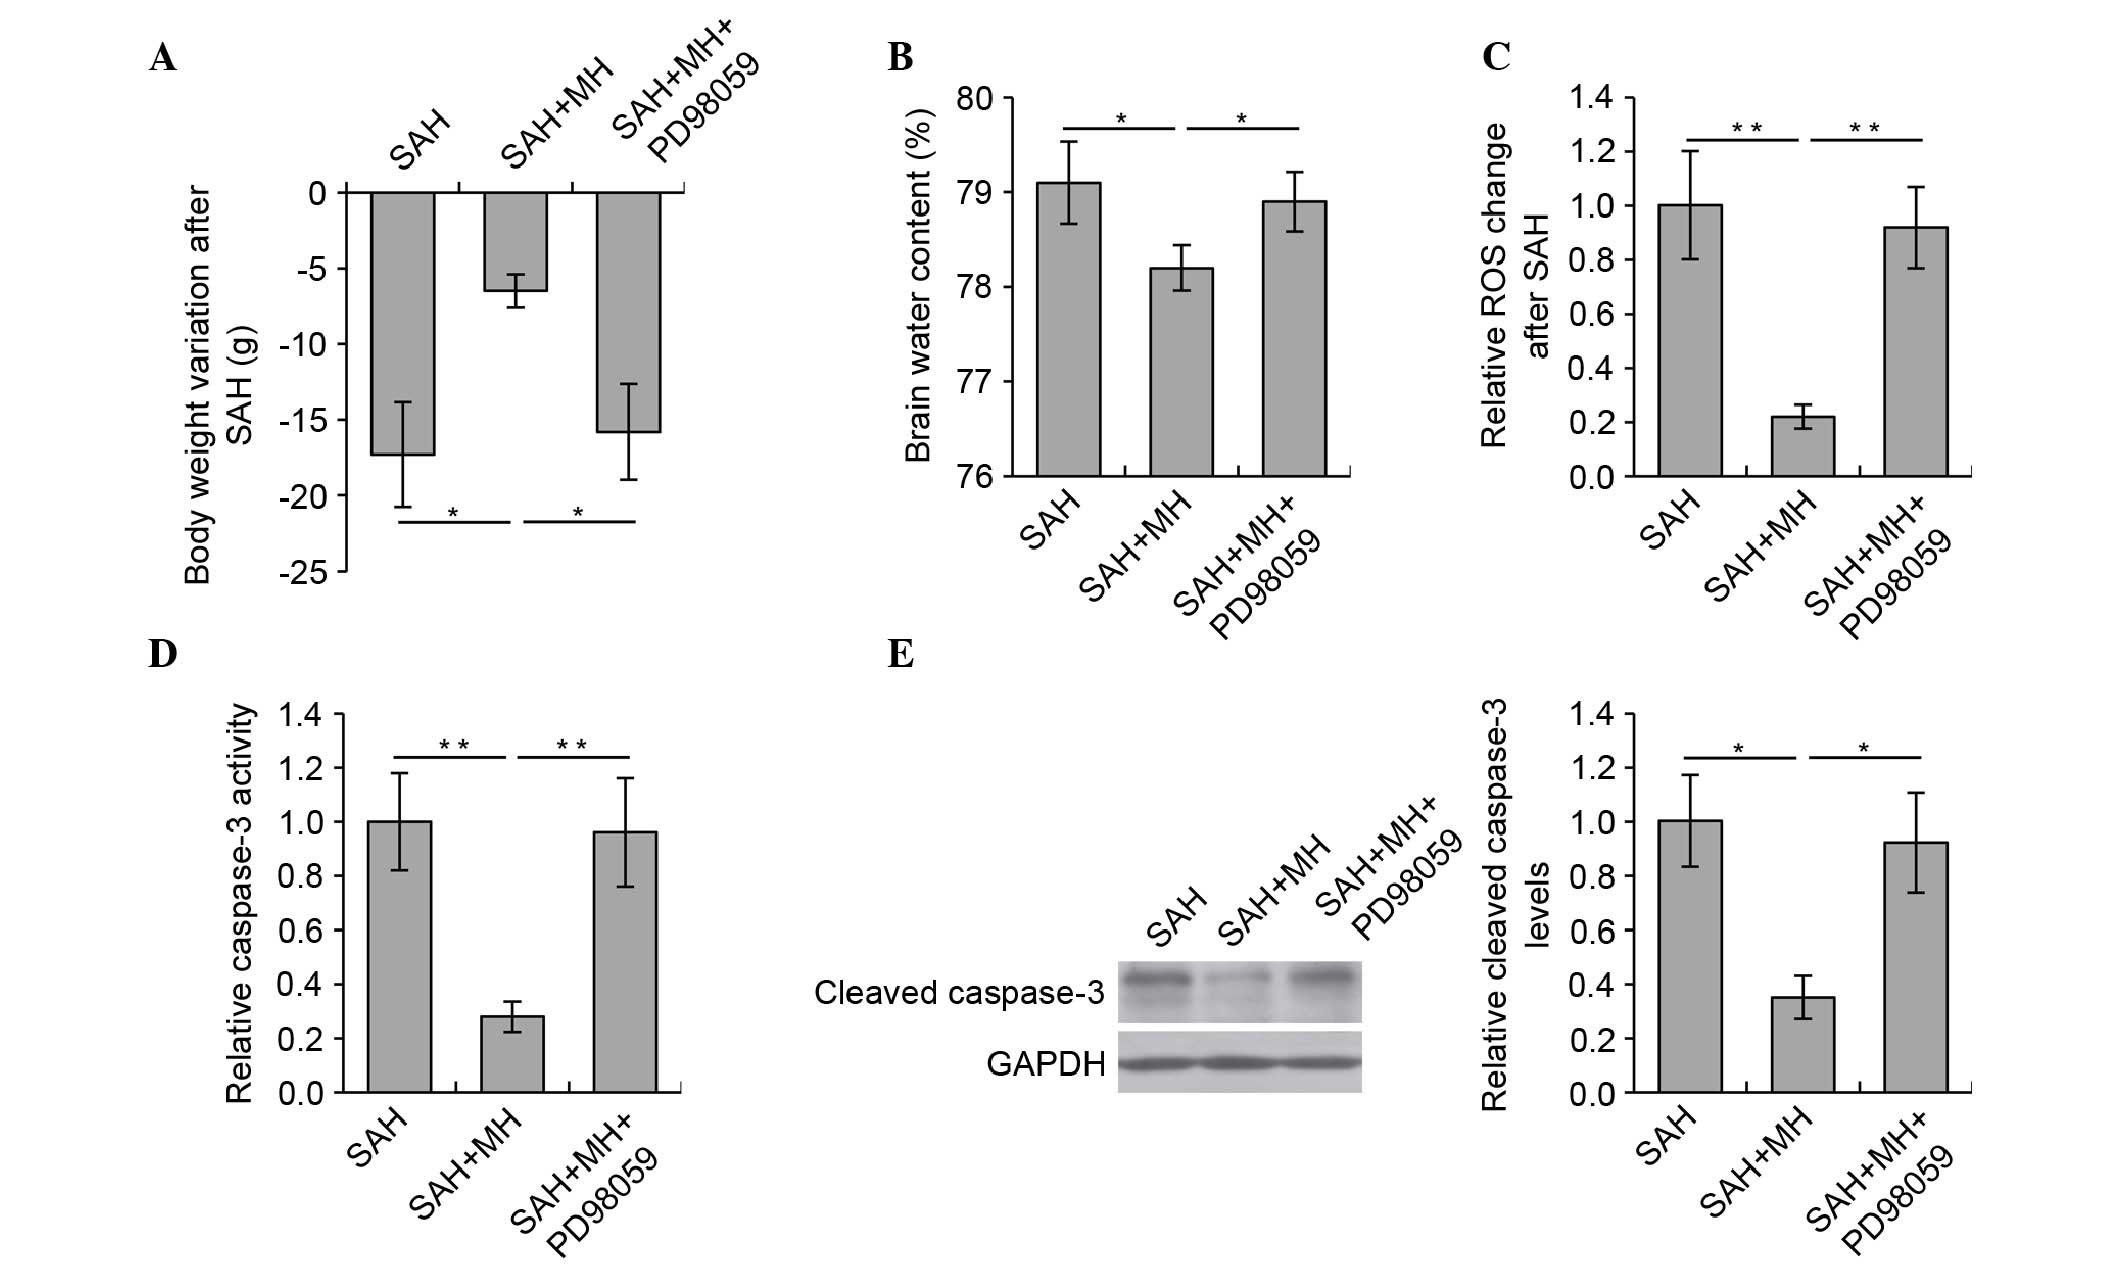 Mild hypothermia protects against early brain injury in rats